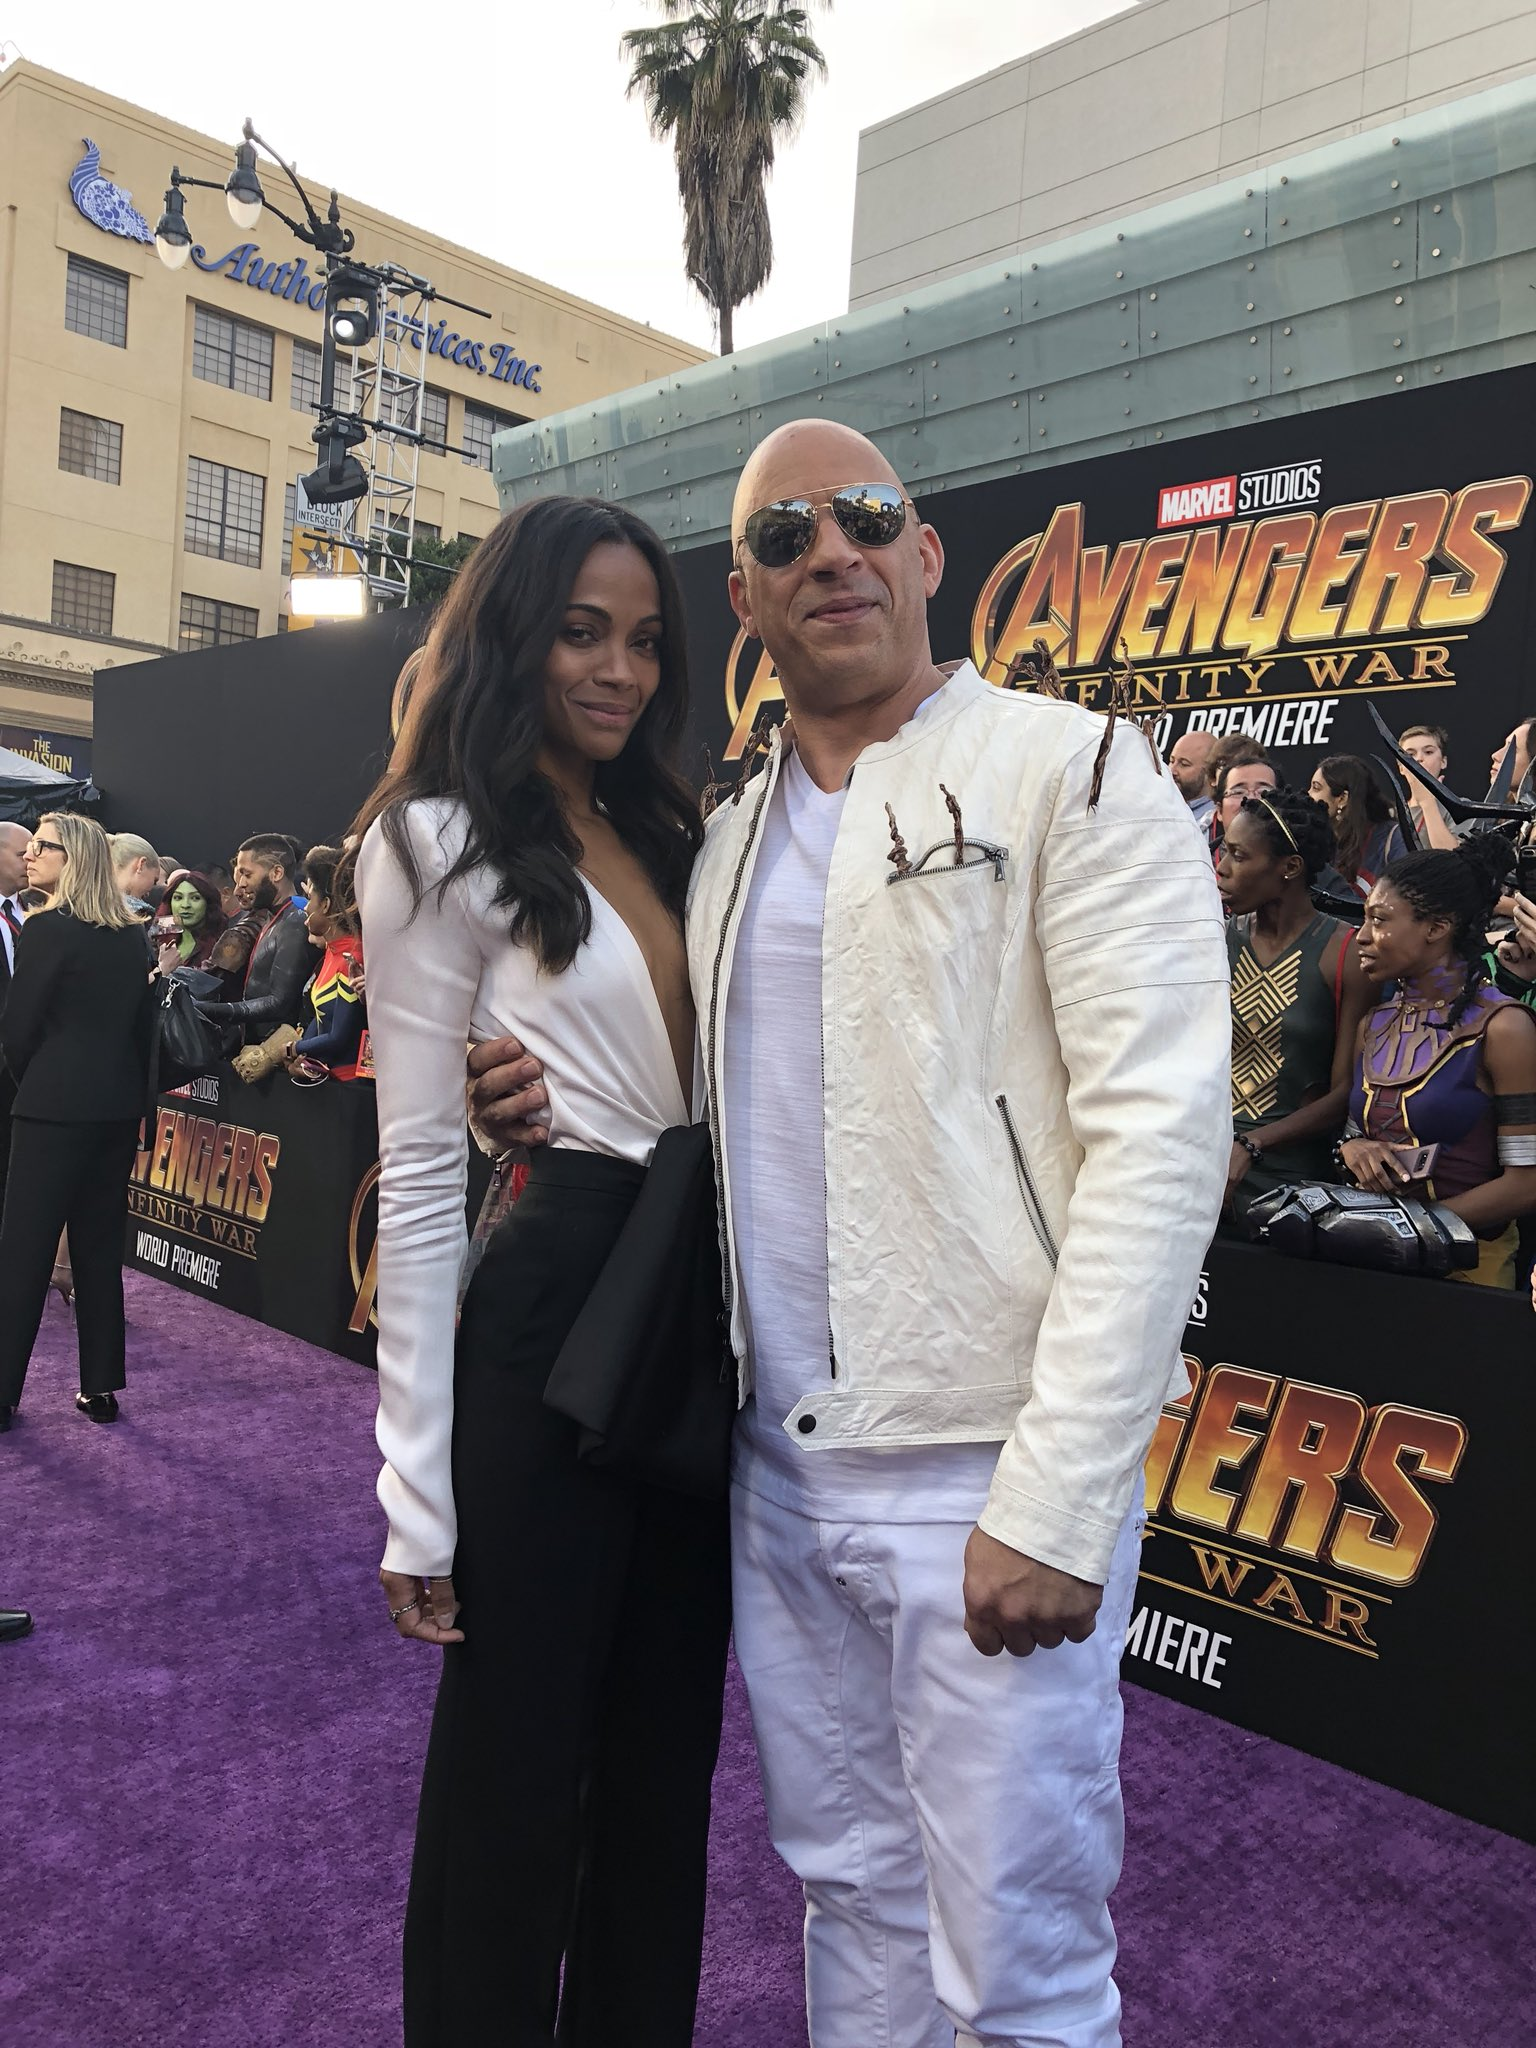 Some of our favorite Guardians. @zoesaldana @vindiesel @prattprattpratt #InfinityWar https://t.co/1SlGLRXxVu